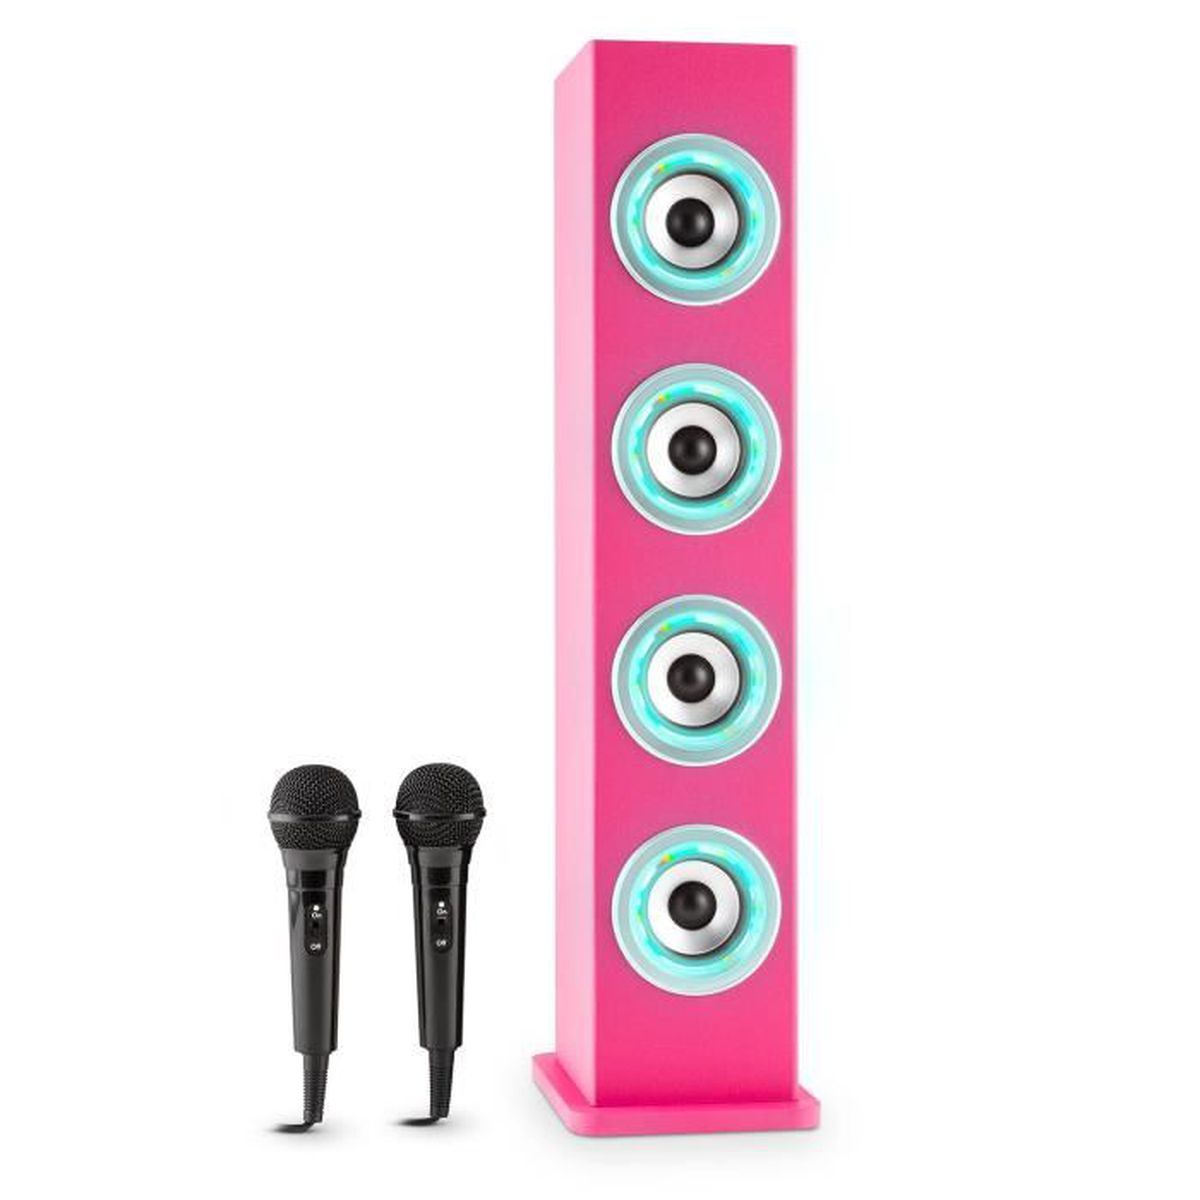 auna karaboom enceinte bluetooth avec fonction karaoke. Black Bedroom Furniture Sets. Home Design Ideas